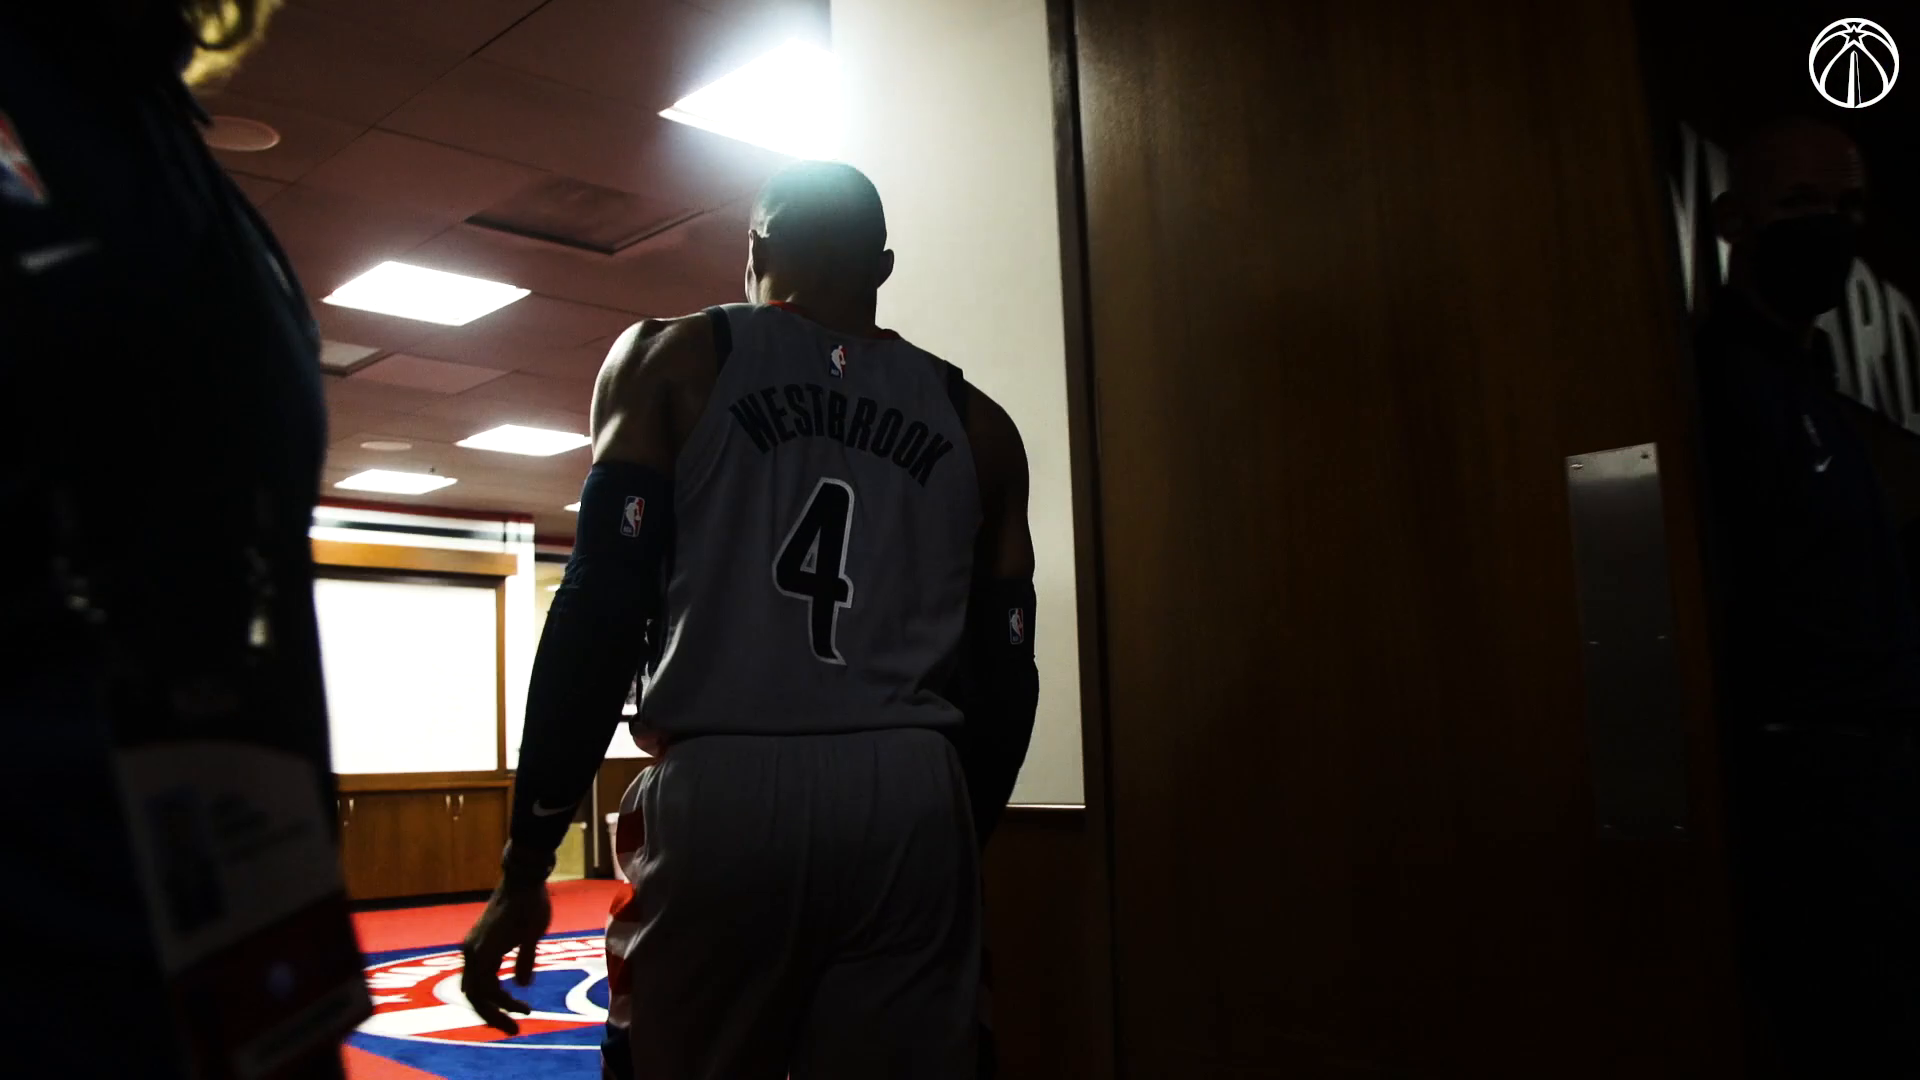 Inside the Wizards' locker room after Game 4 vs. Sixers - 5/31/21